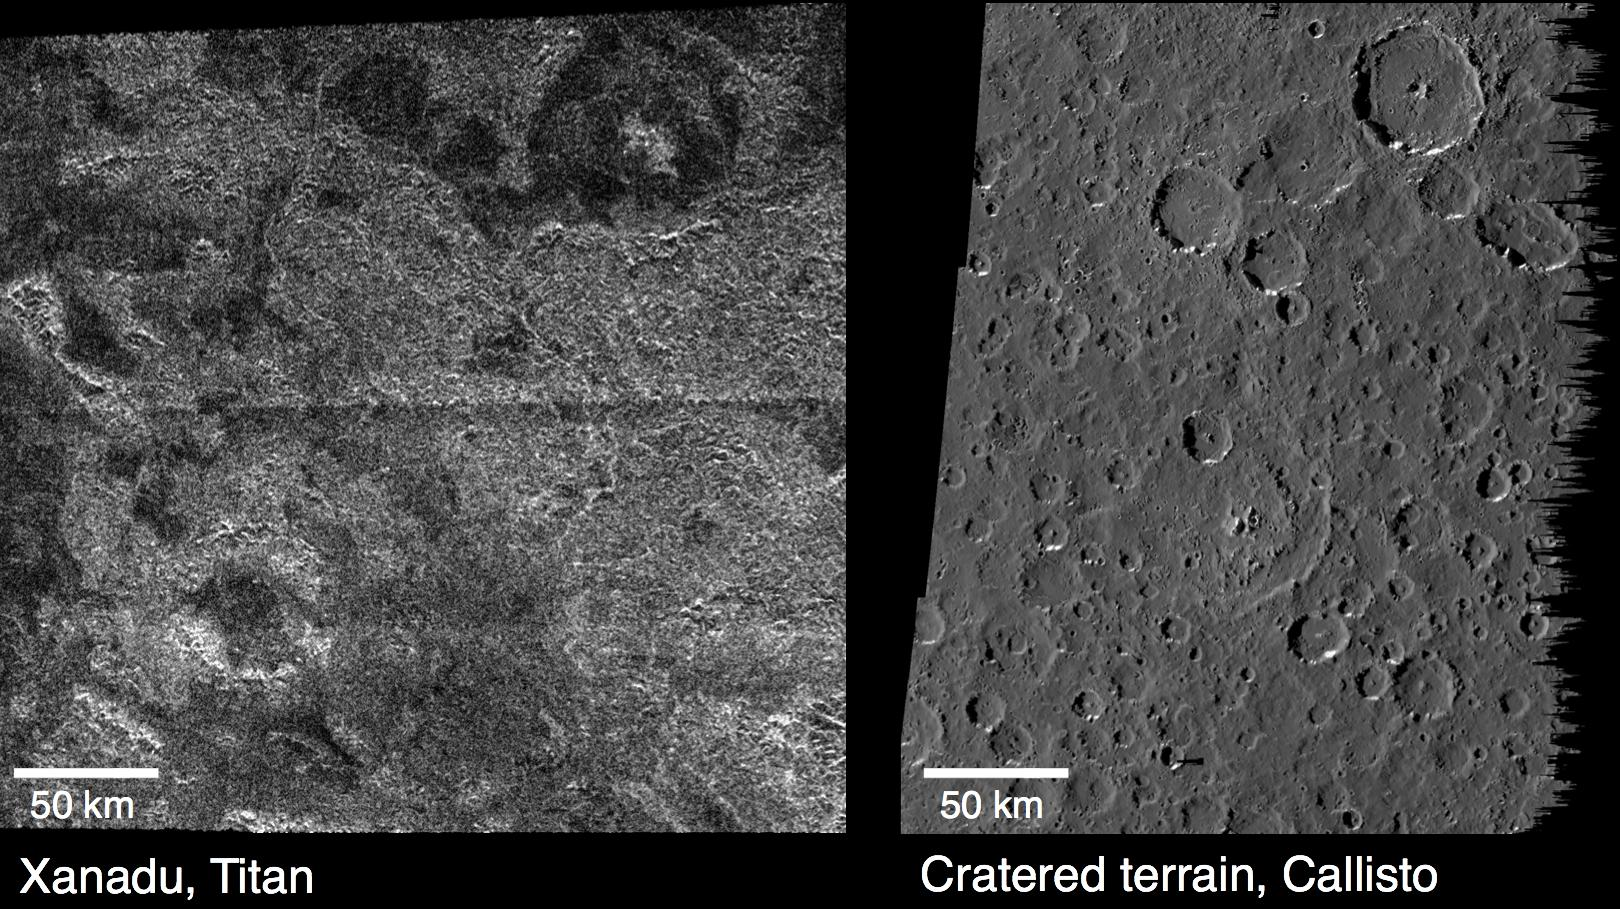 Side-by-side comparison of craters on Titan, left, and  on Callisto